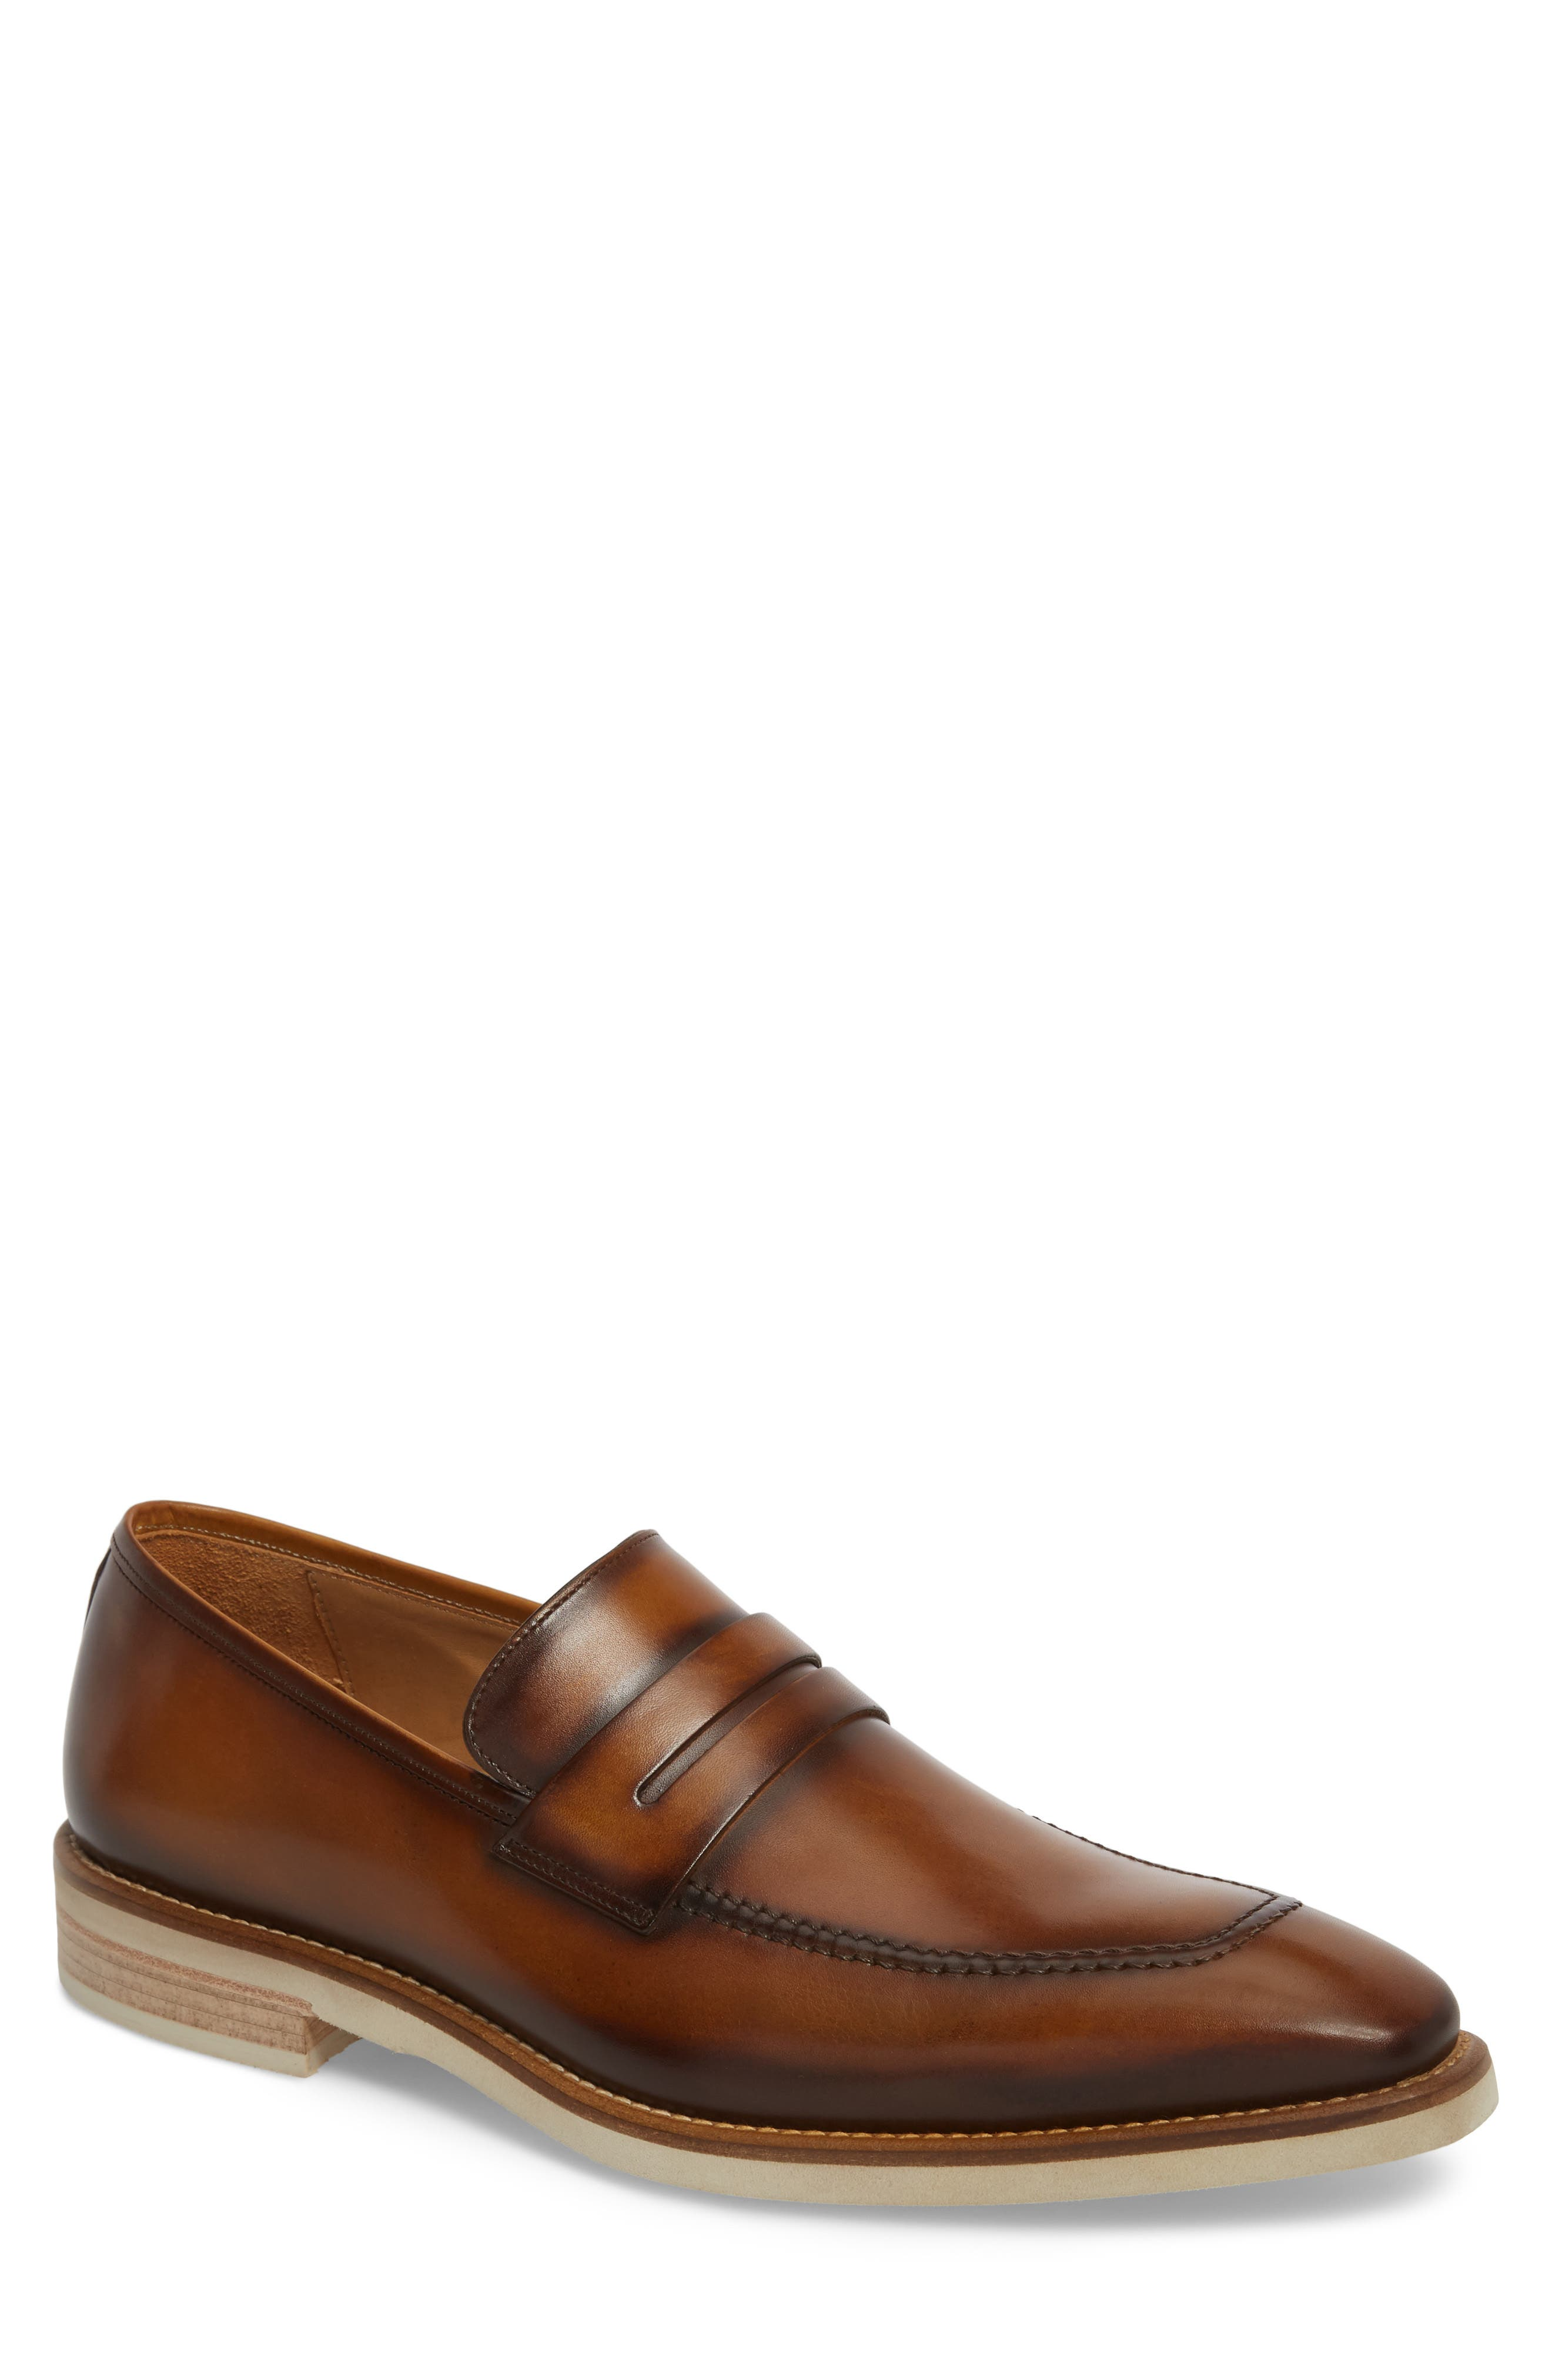 Castor Apron Toe Penny Loafer,                             Main thumbnail 1, color,                             Honey Leather